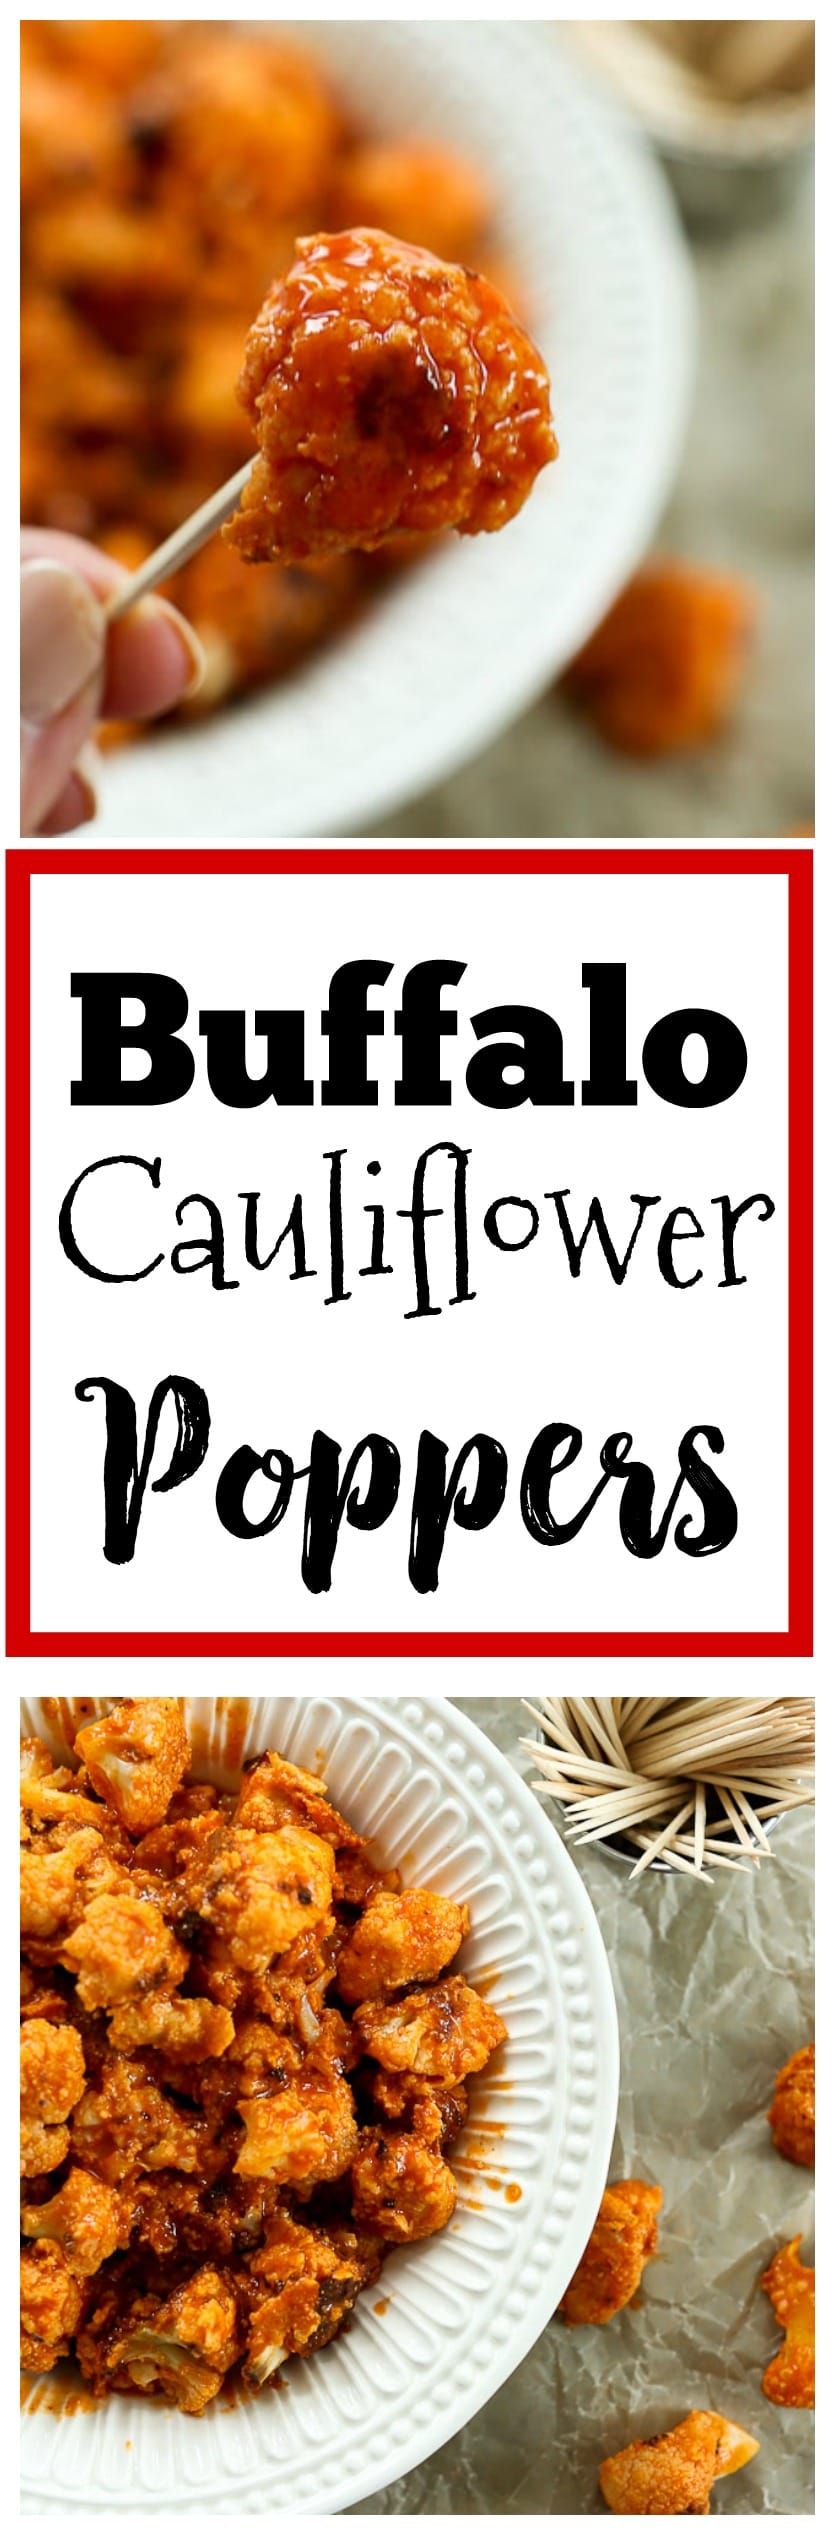 Buffalo Cauliflower Poppers recipe. Vegan, gluten-free, paleo. Healthy football food for tailgates or your Super Bowl party